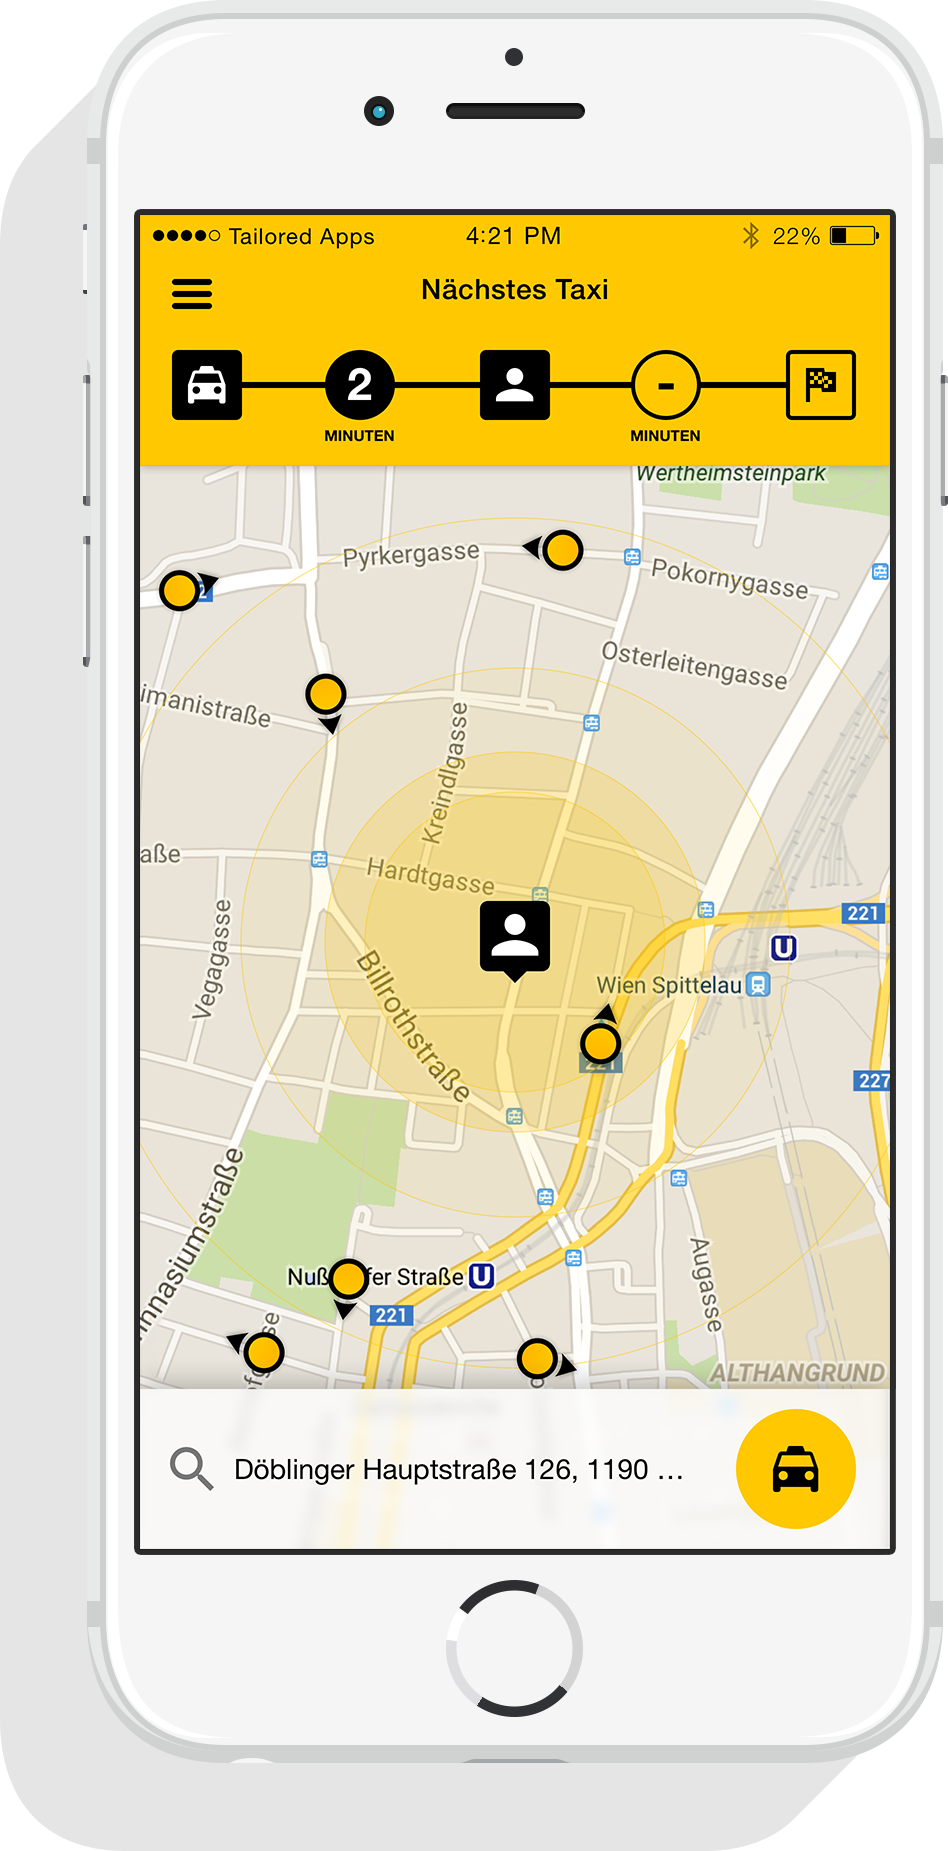 TaxiApp_Mockup_01